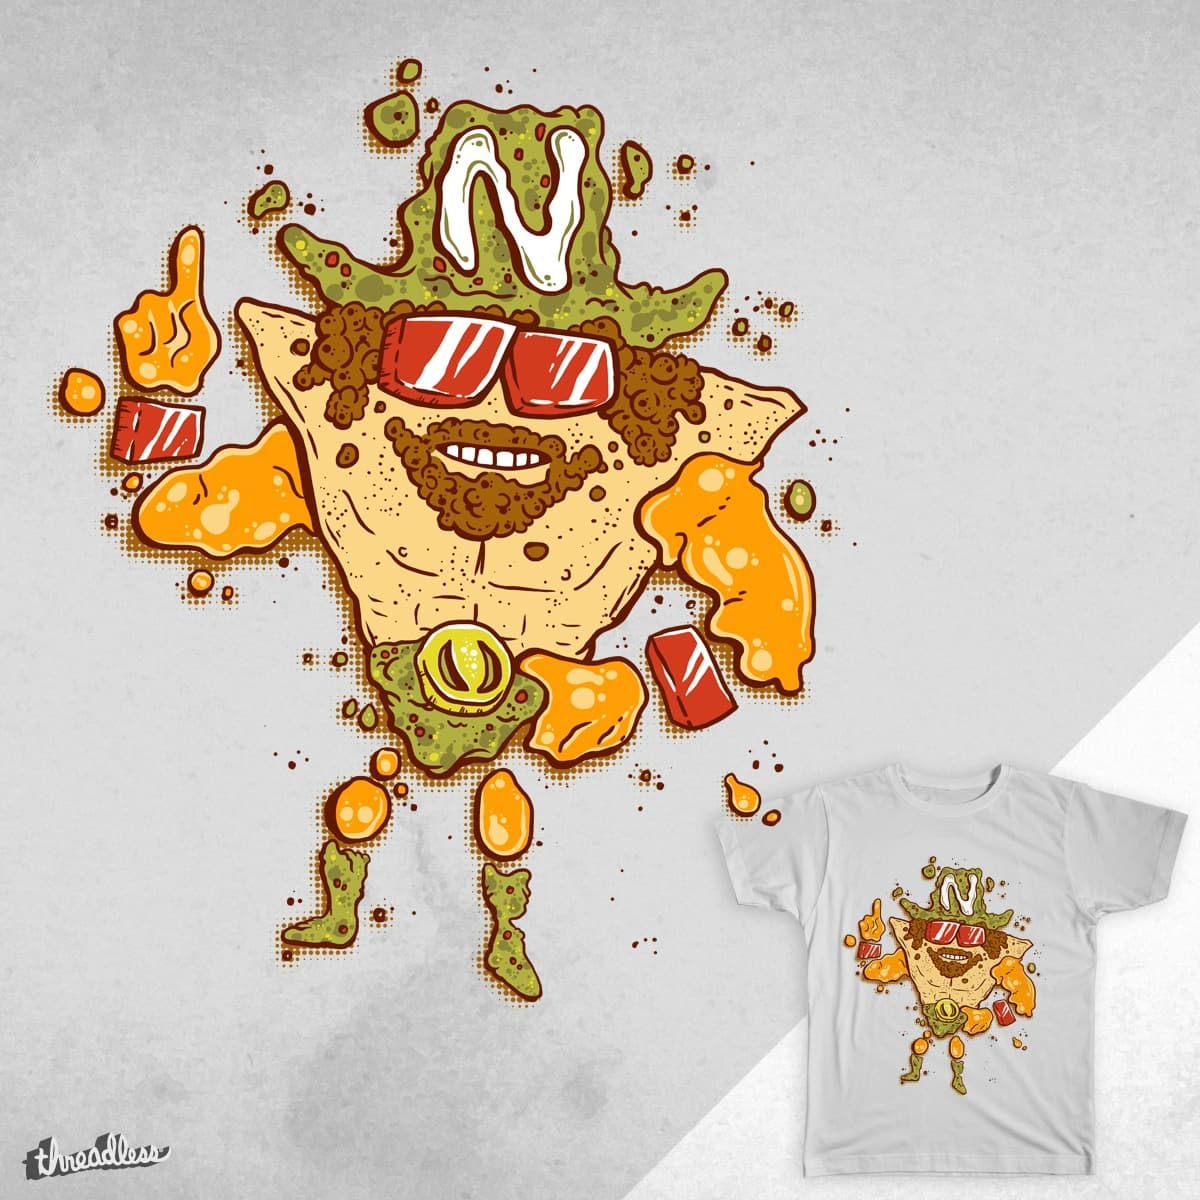 Nacho Man Randy Salvaje by bennyd302 on Threadless